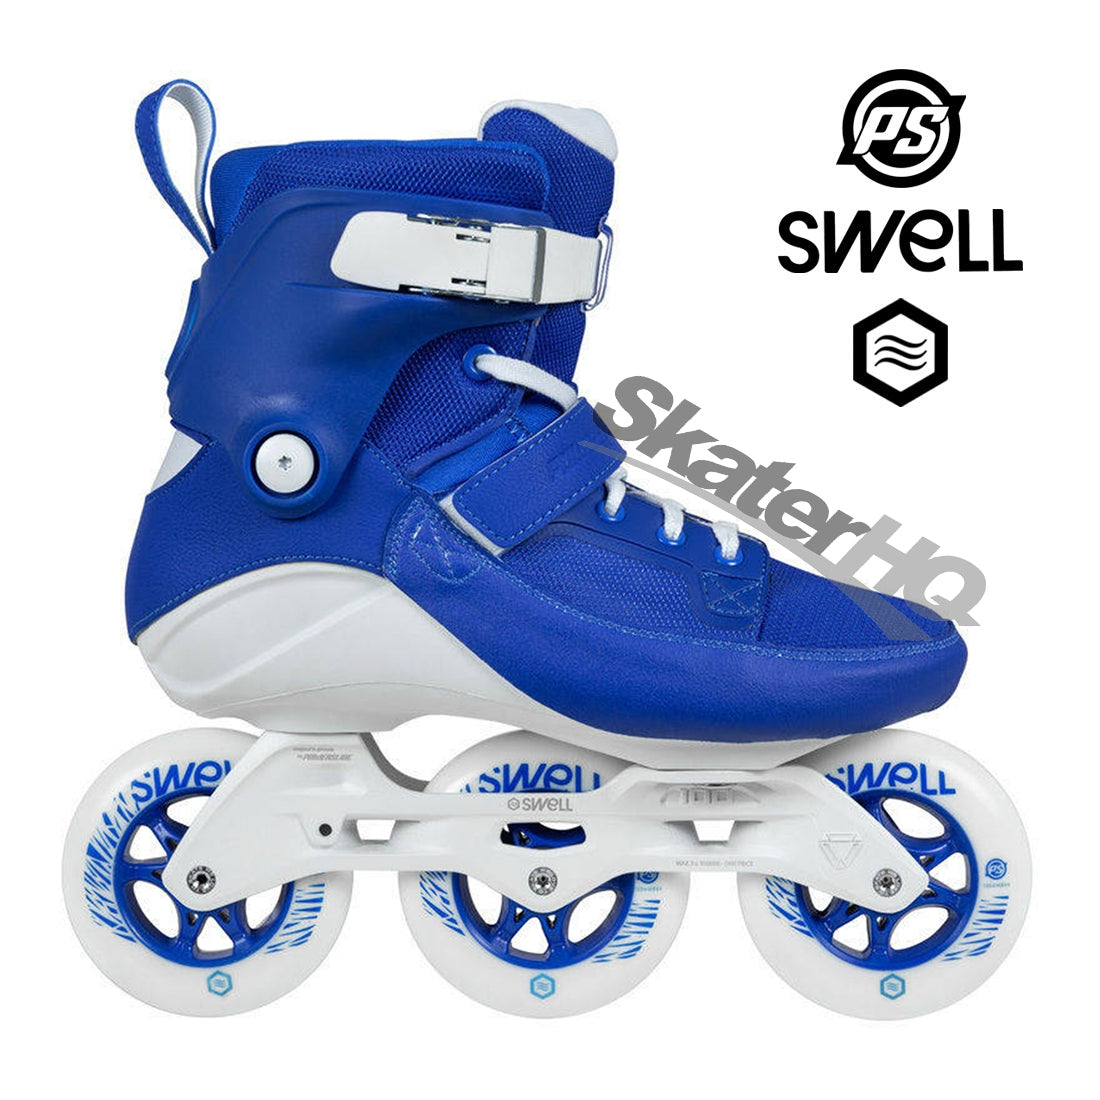 Powerslide Swell 100mm Royal 7USL/6US/EU39 - Royal Blue